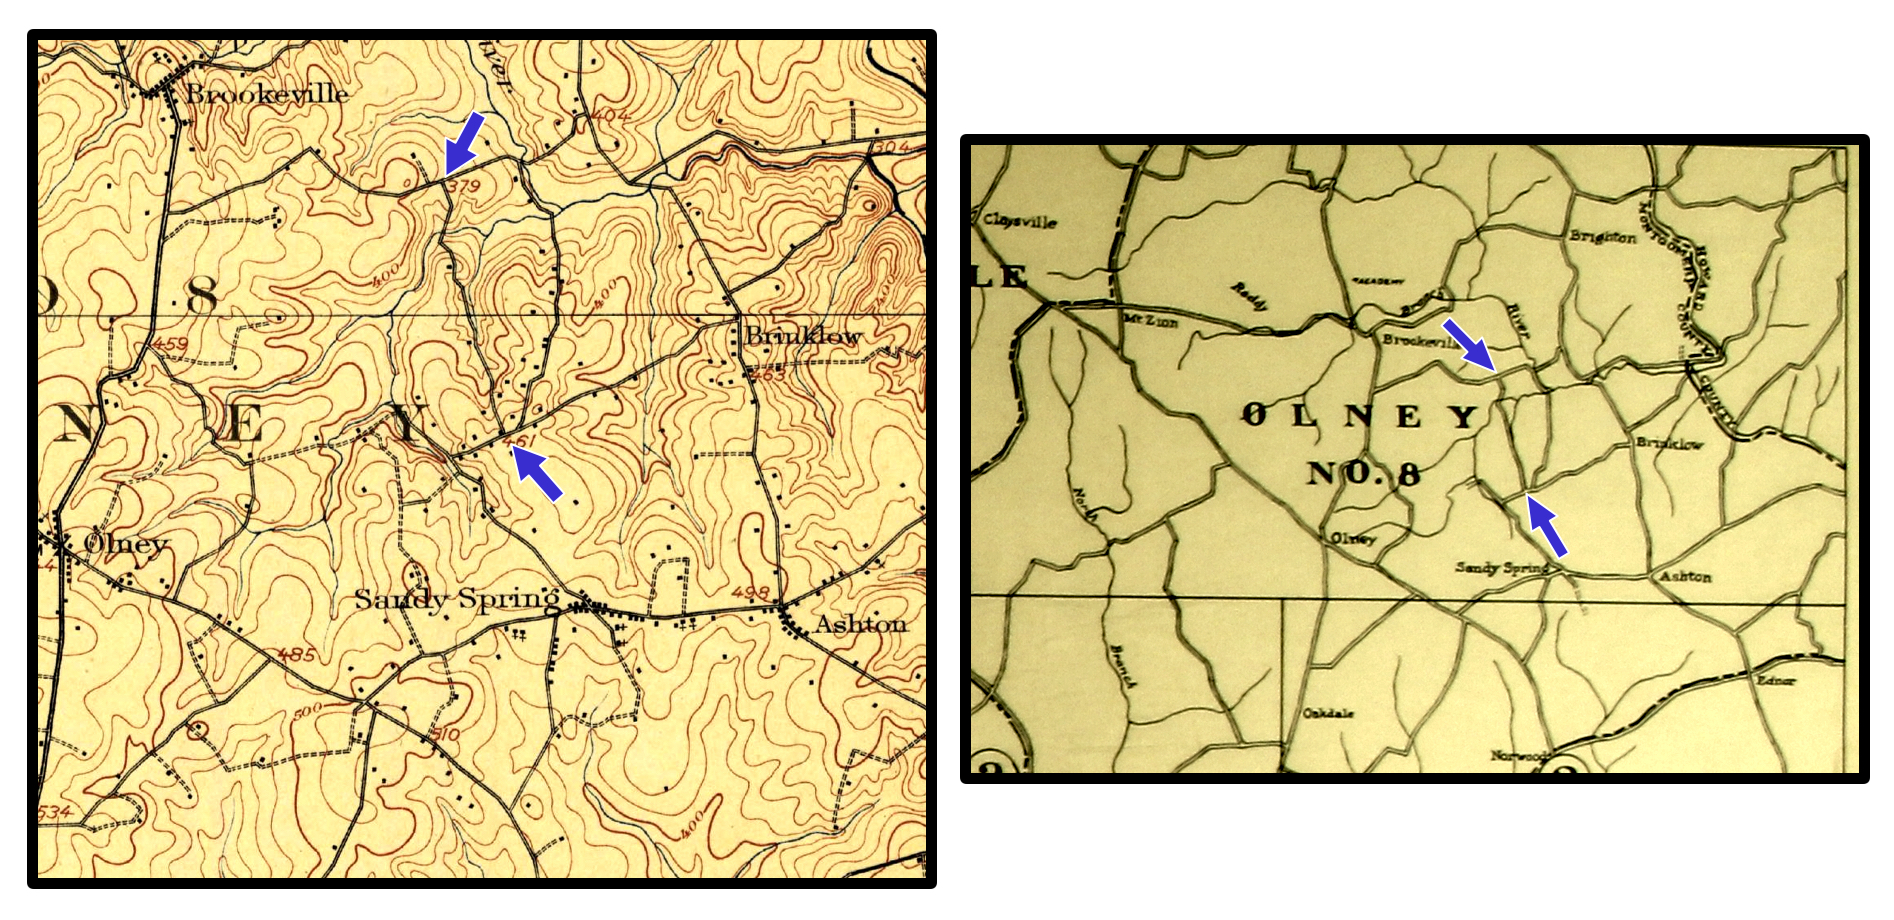 Historic maps illustrating the Farm Road corridor (blue arrows mark termini). The map on the left is from the 1908 U.S.G.S. Rockville quadrangle and the map on the right is from the 1916 Real Estate Atlas of the Part of Montgomery County Adjacent to the District of Columbia. Image credit: Public domain.